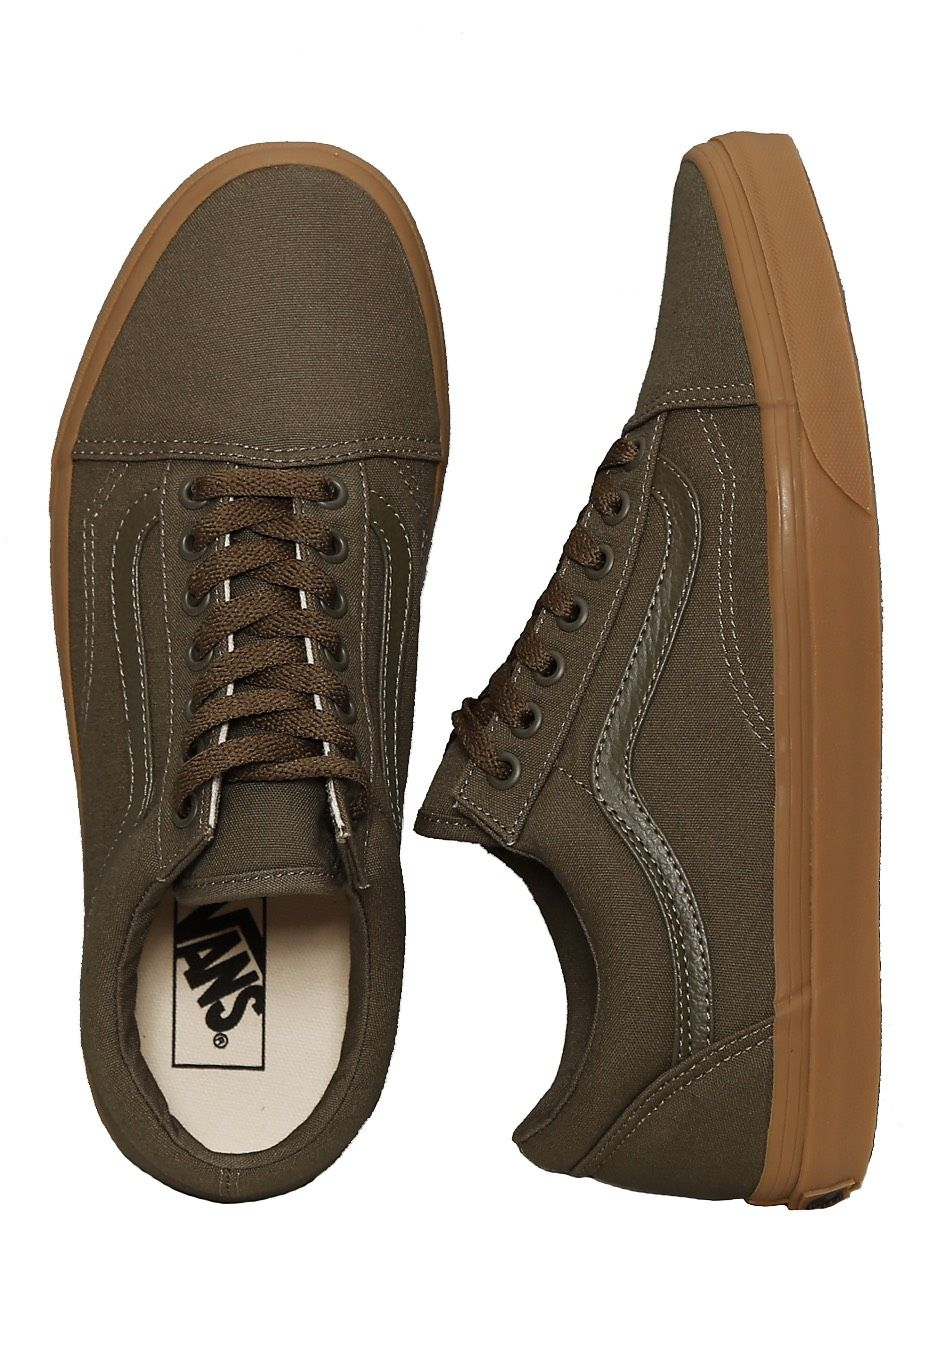 Checkout this out: Vans Old Skool Canvas Gum Ivy Green